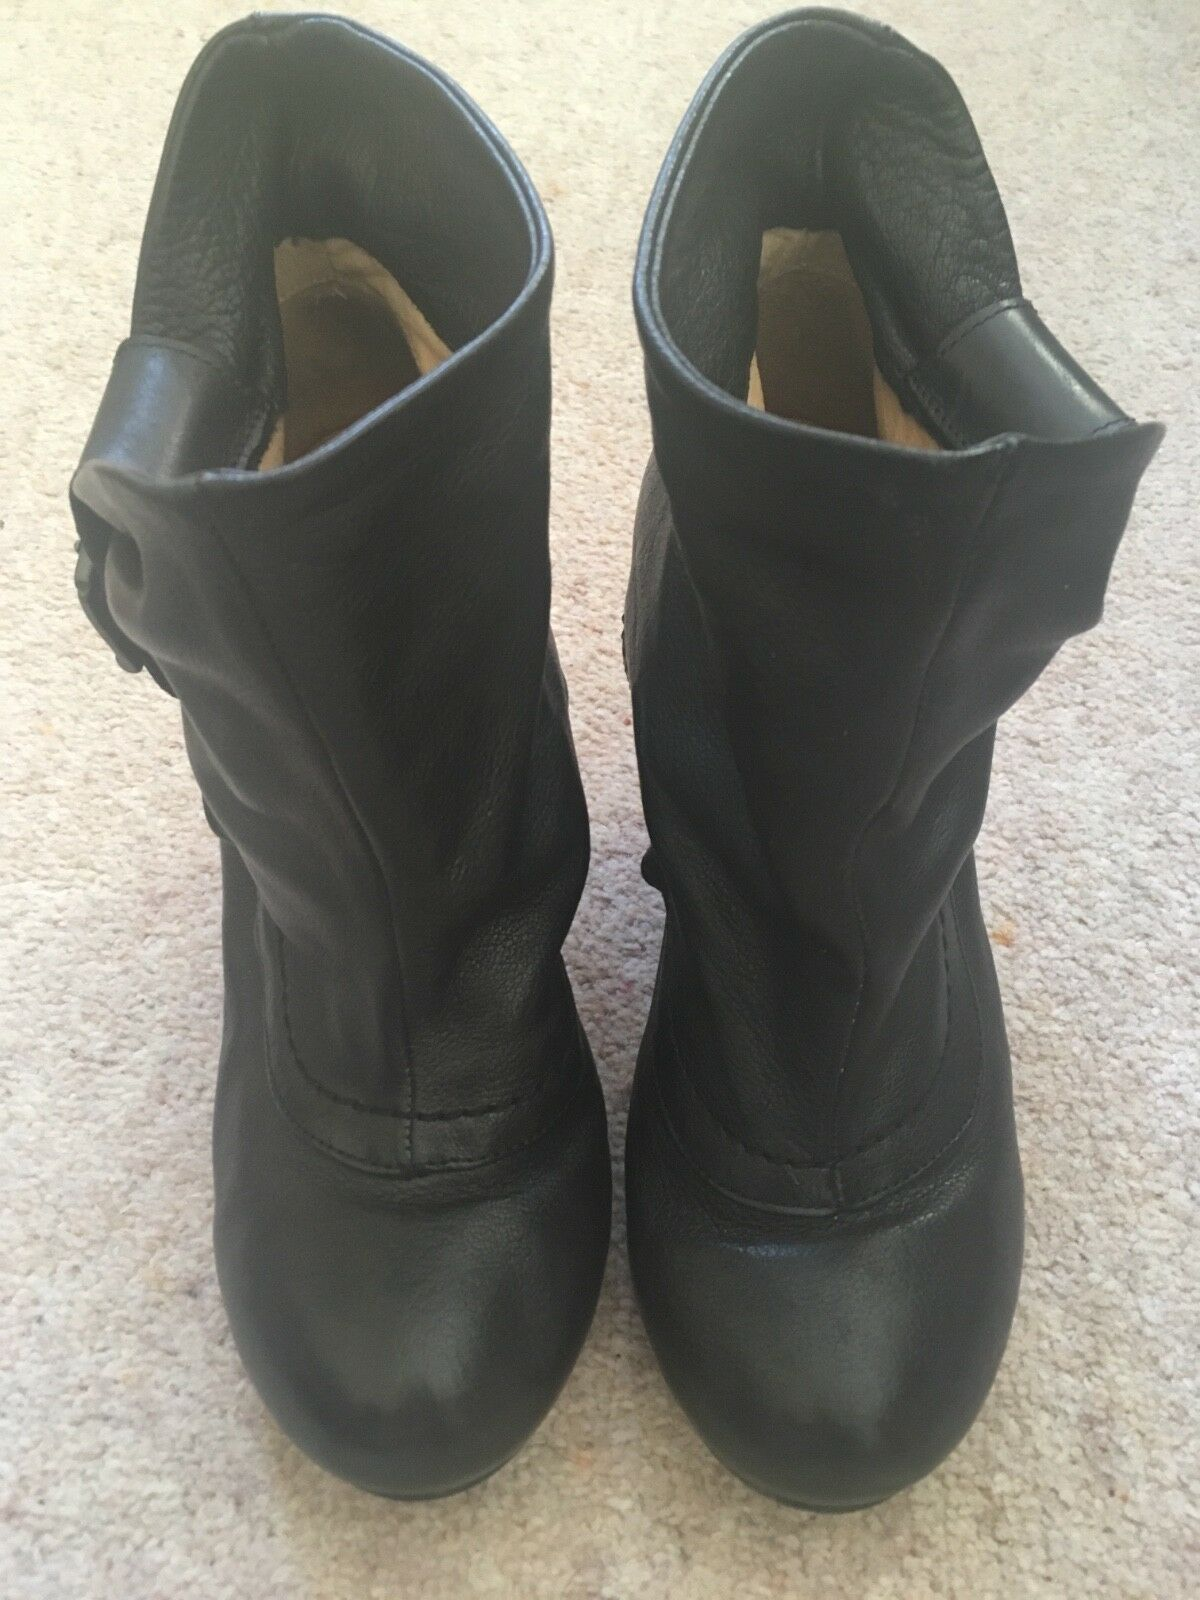 FLY LONDON BLACK LEATHER ANKLE BOOTS 4 (37)